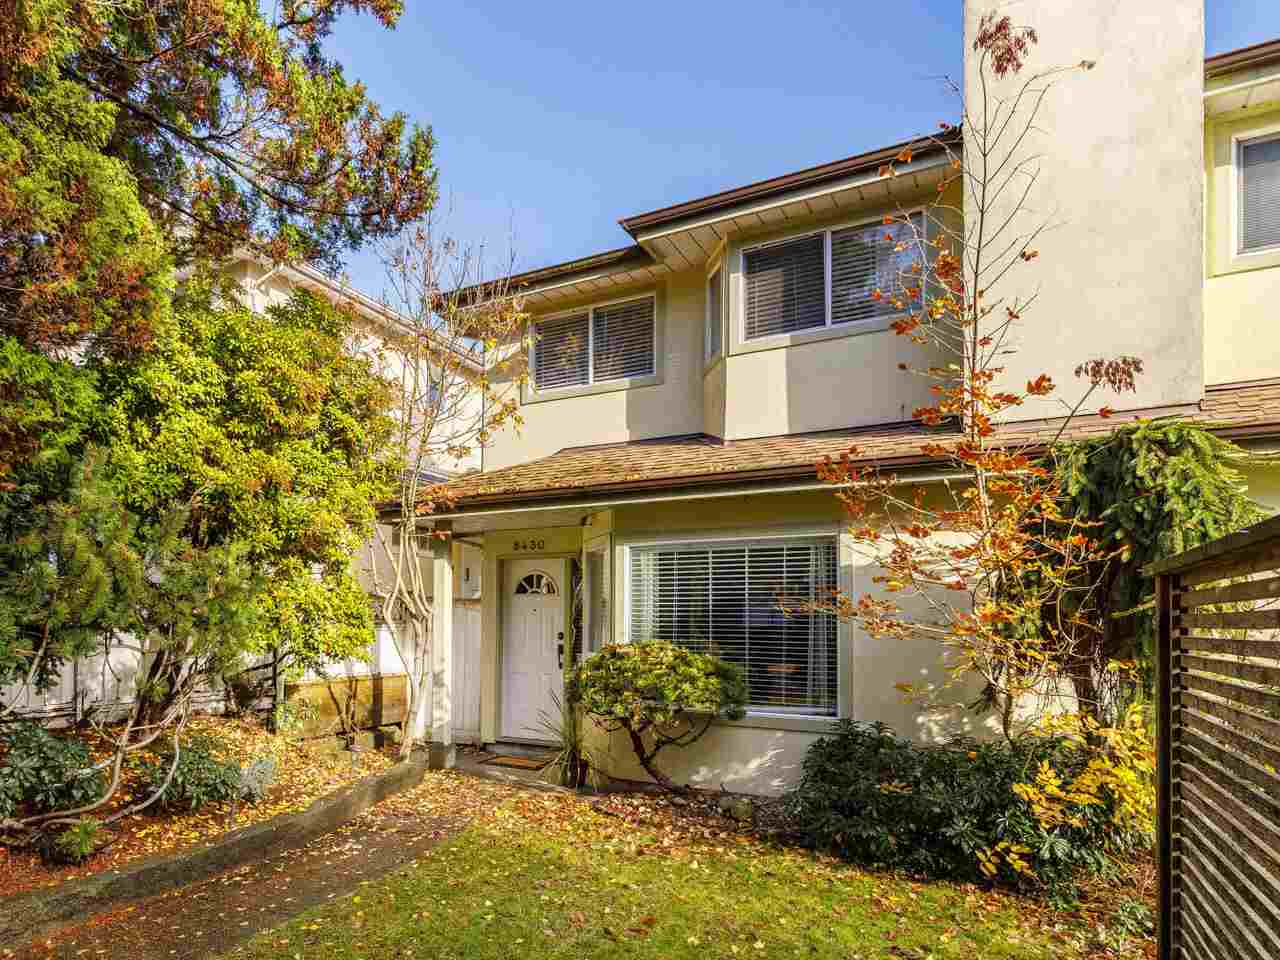 8430 FRENCH STREET - Marpole 1/2 Duplex for sale, 3 Bedrooms (R2518199)